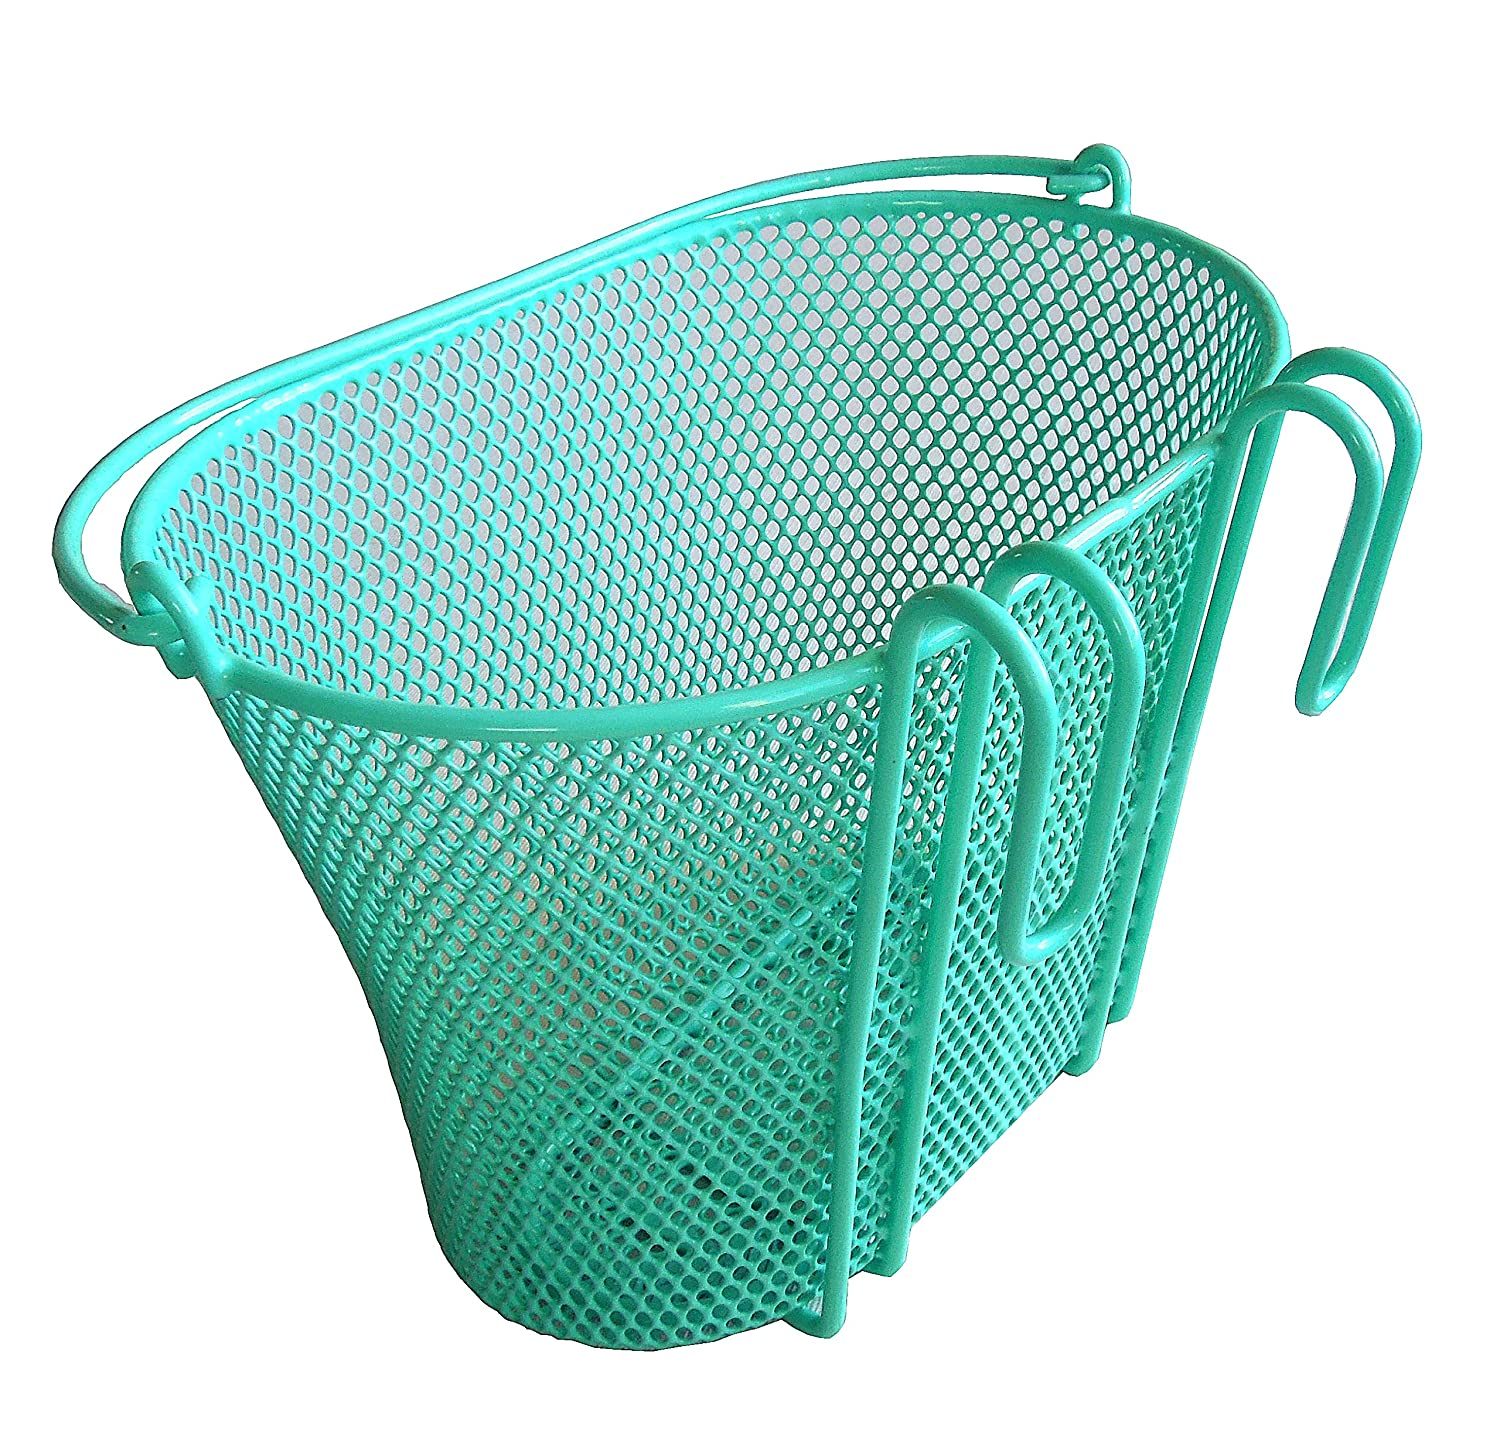 Basket with hooks Green, Front , Removable, Children wire mesh SMALL ...